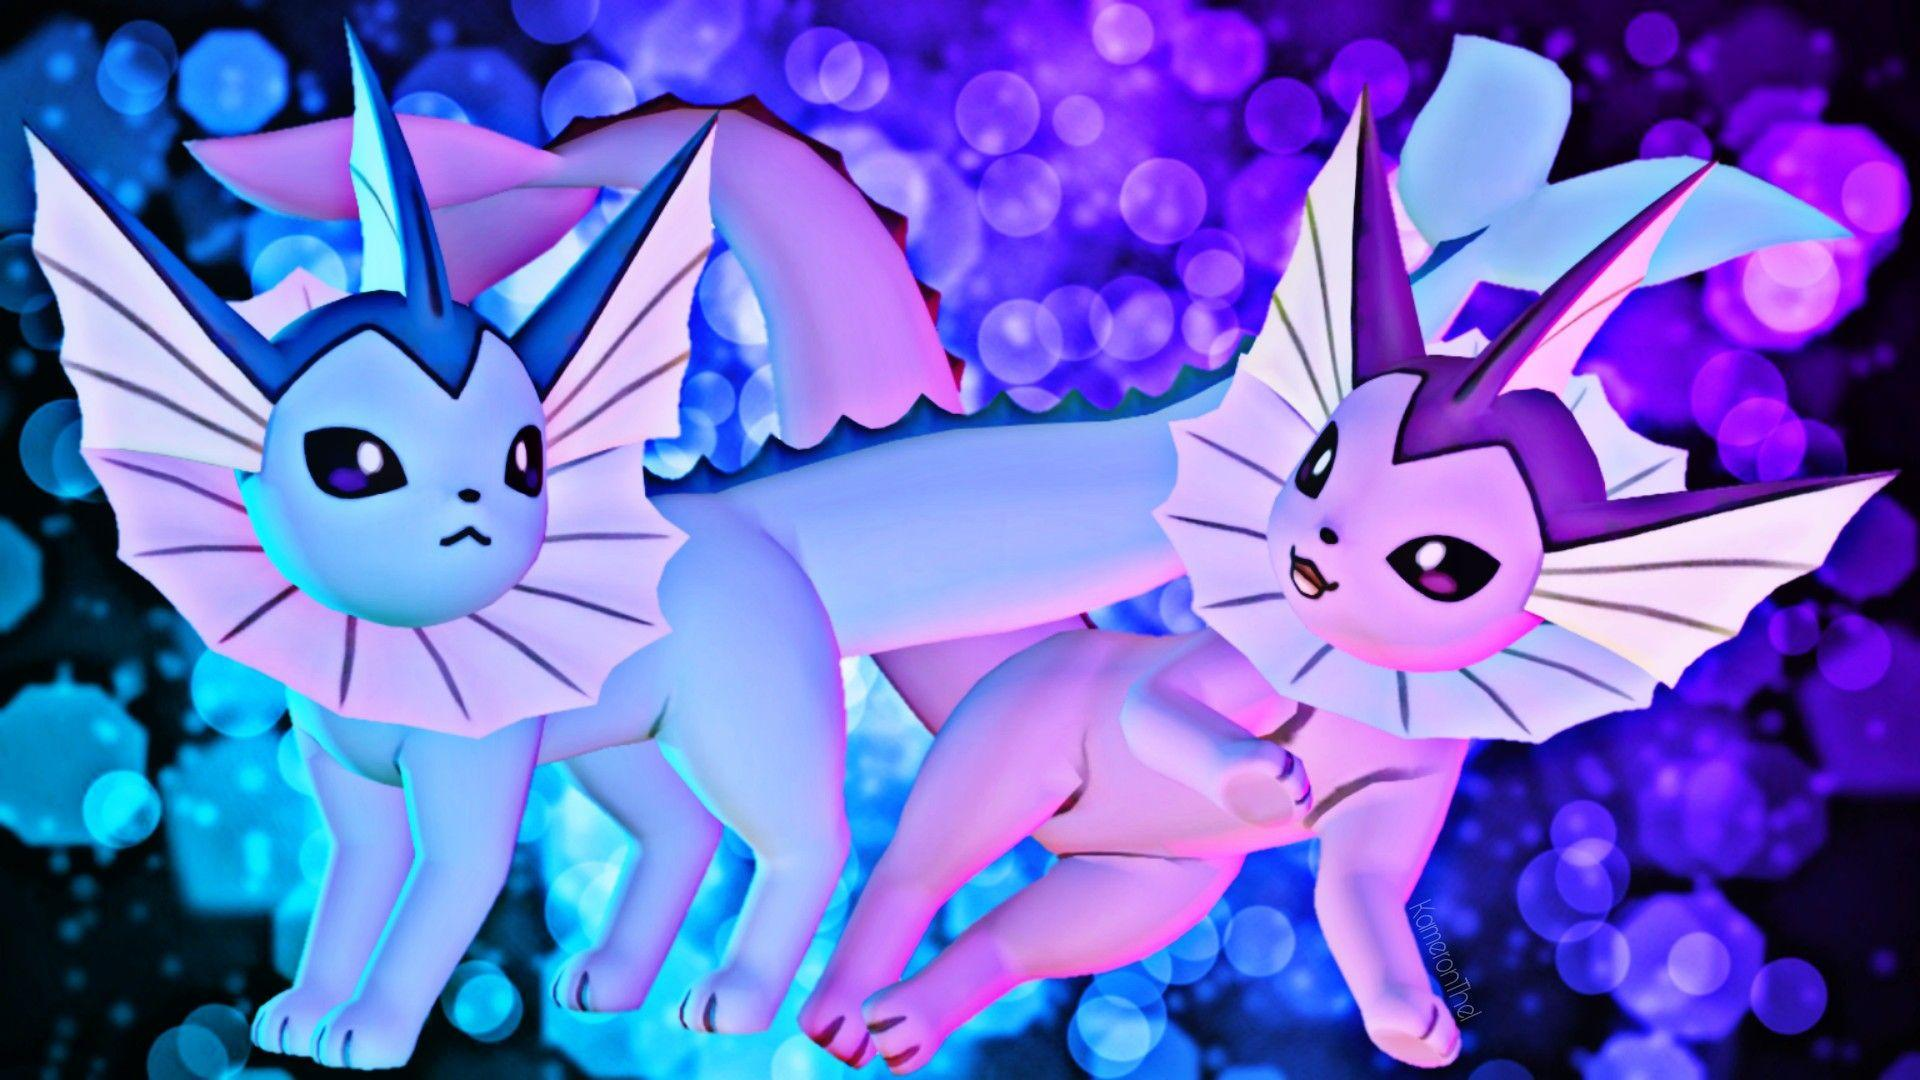 Pokemon\Sfm] Vaporeon by KameronThe1 on DeviantArt